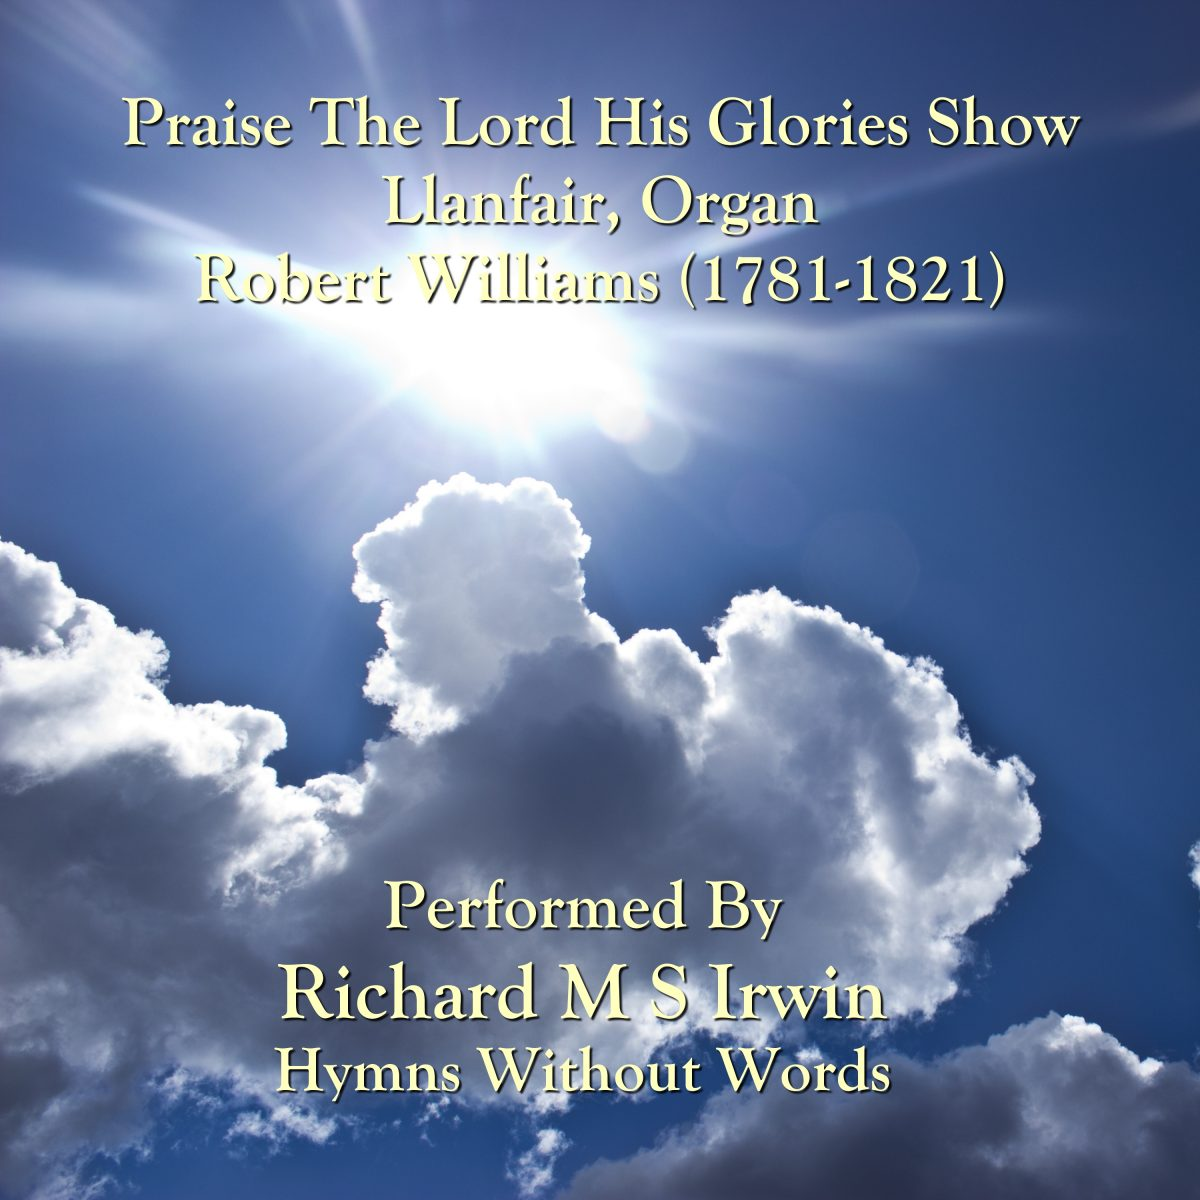 Praise The Lord His Glories Show (Llanfair, Organ, 4 Verses)